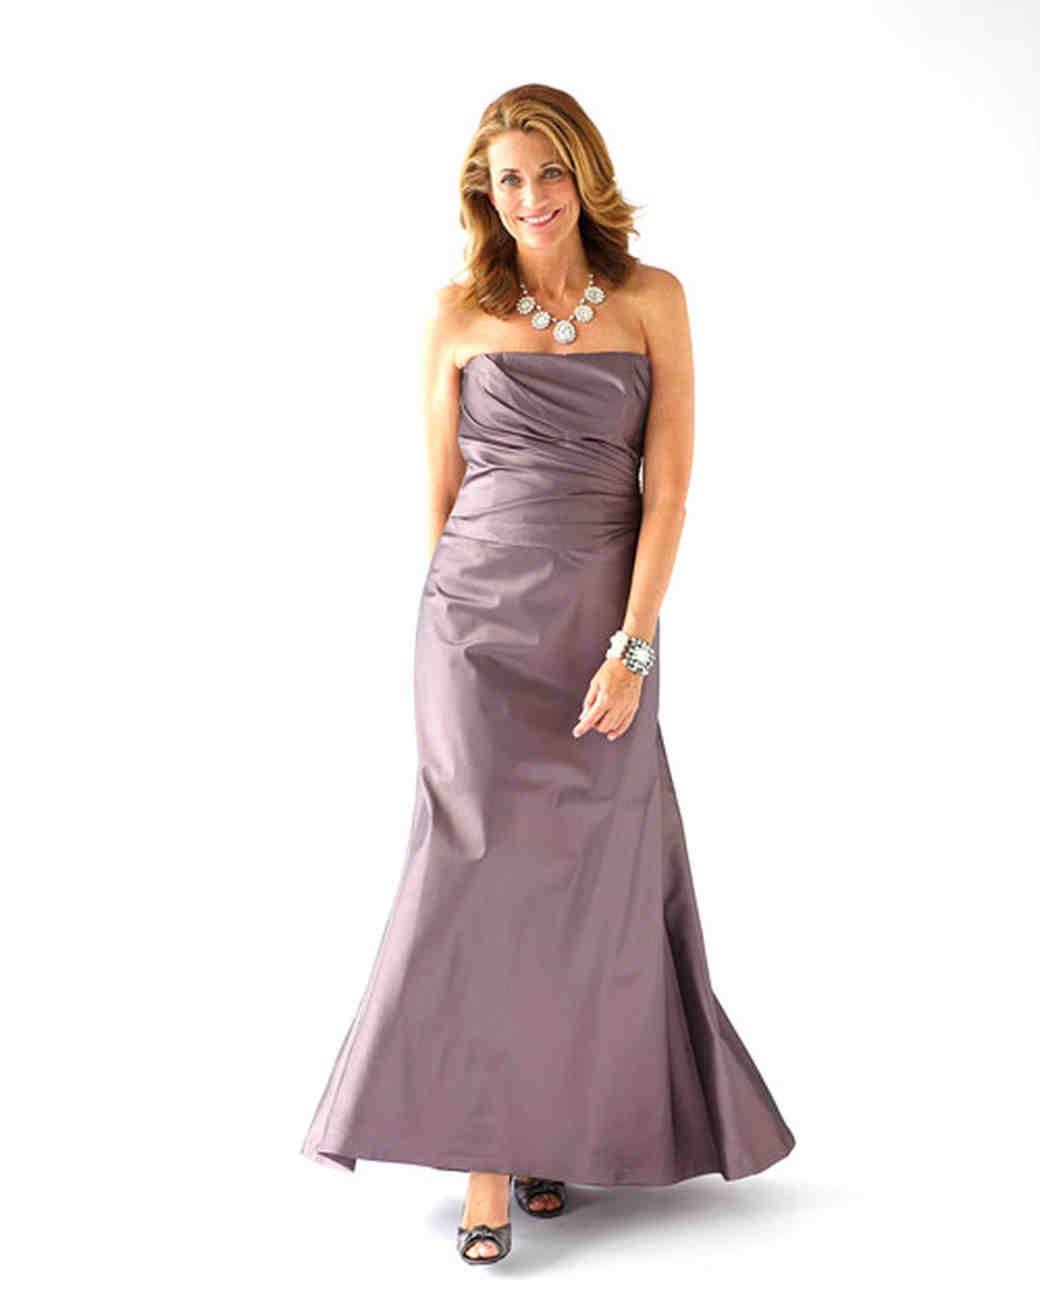 Mother Gown For Wedding: Dresses For The Mother Of The Bride And Groom